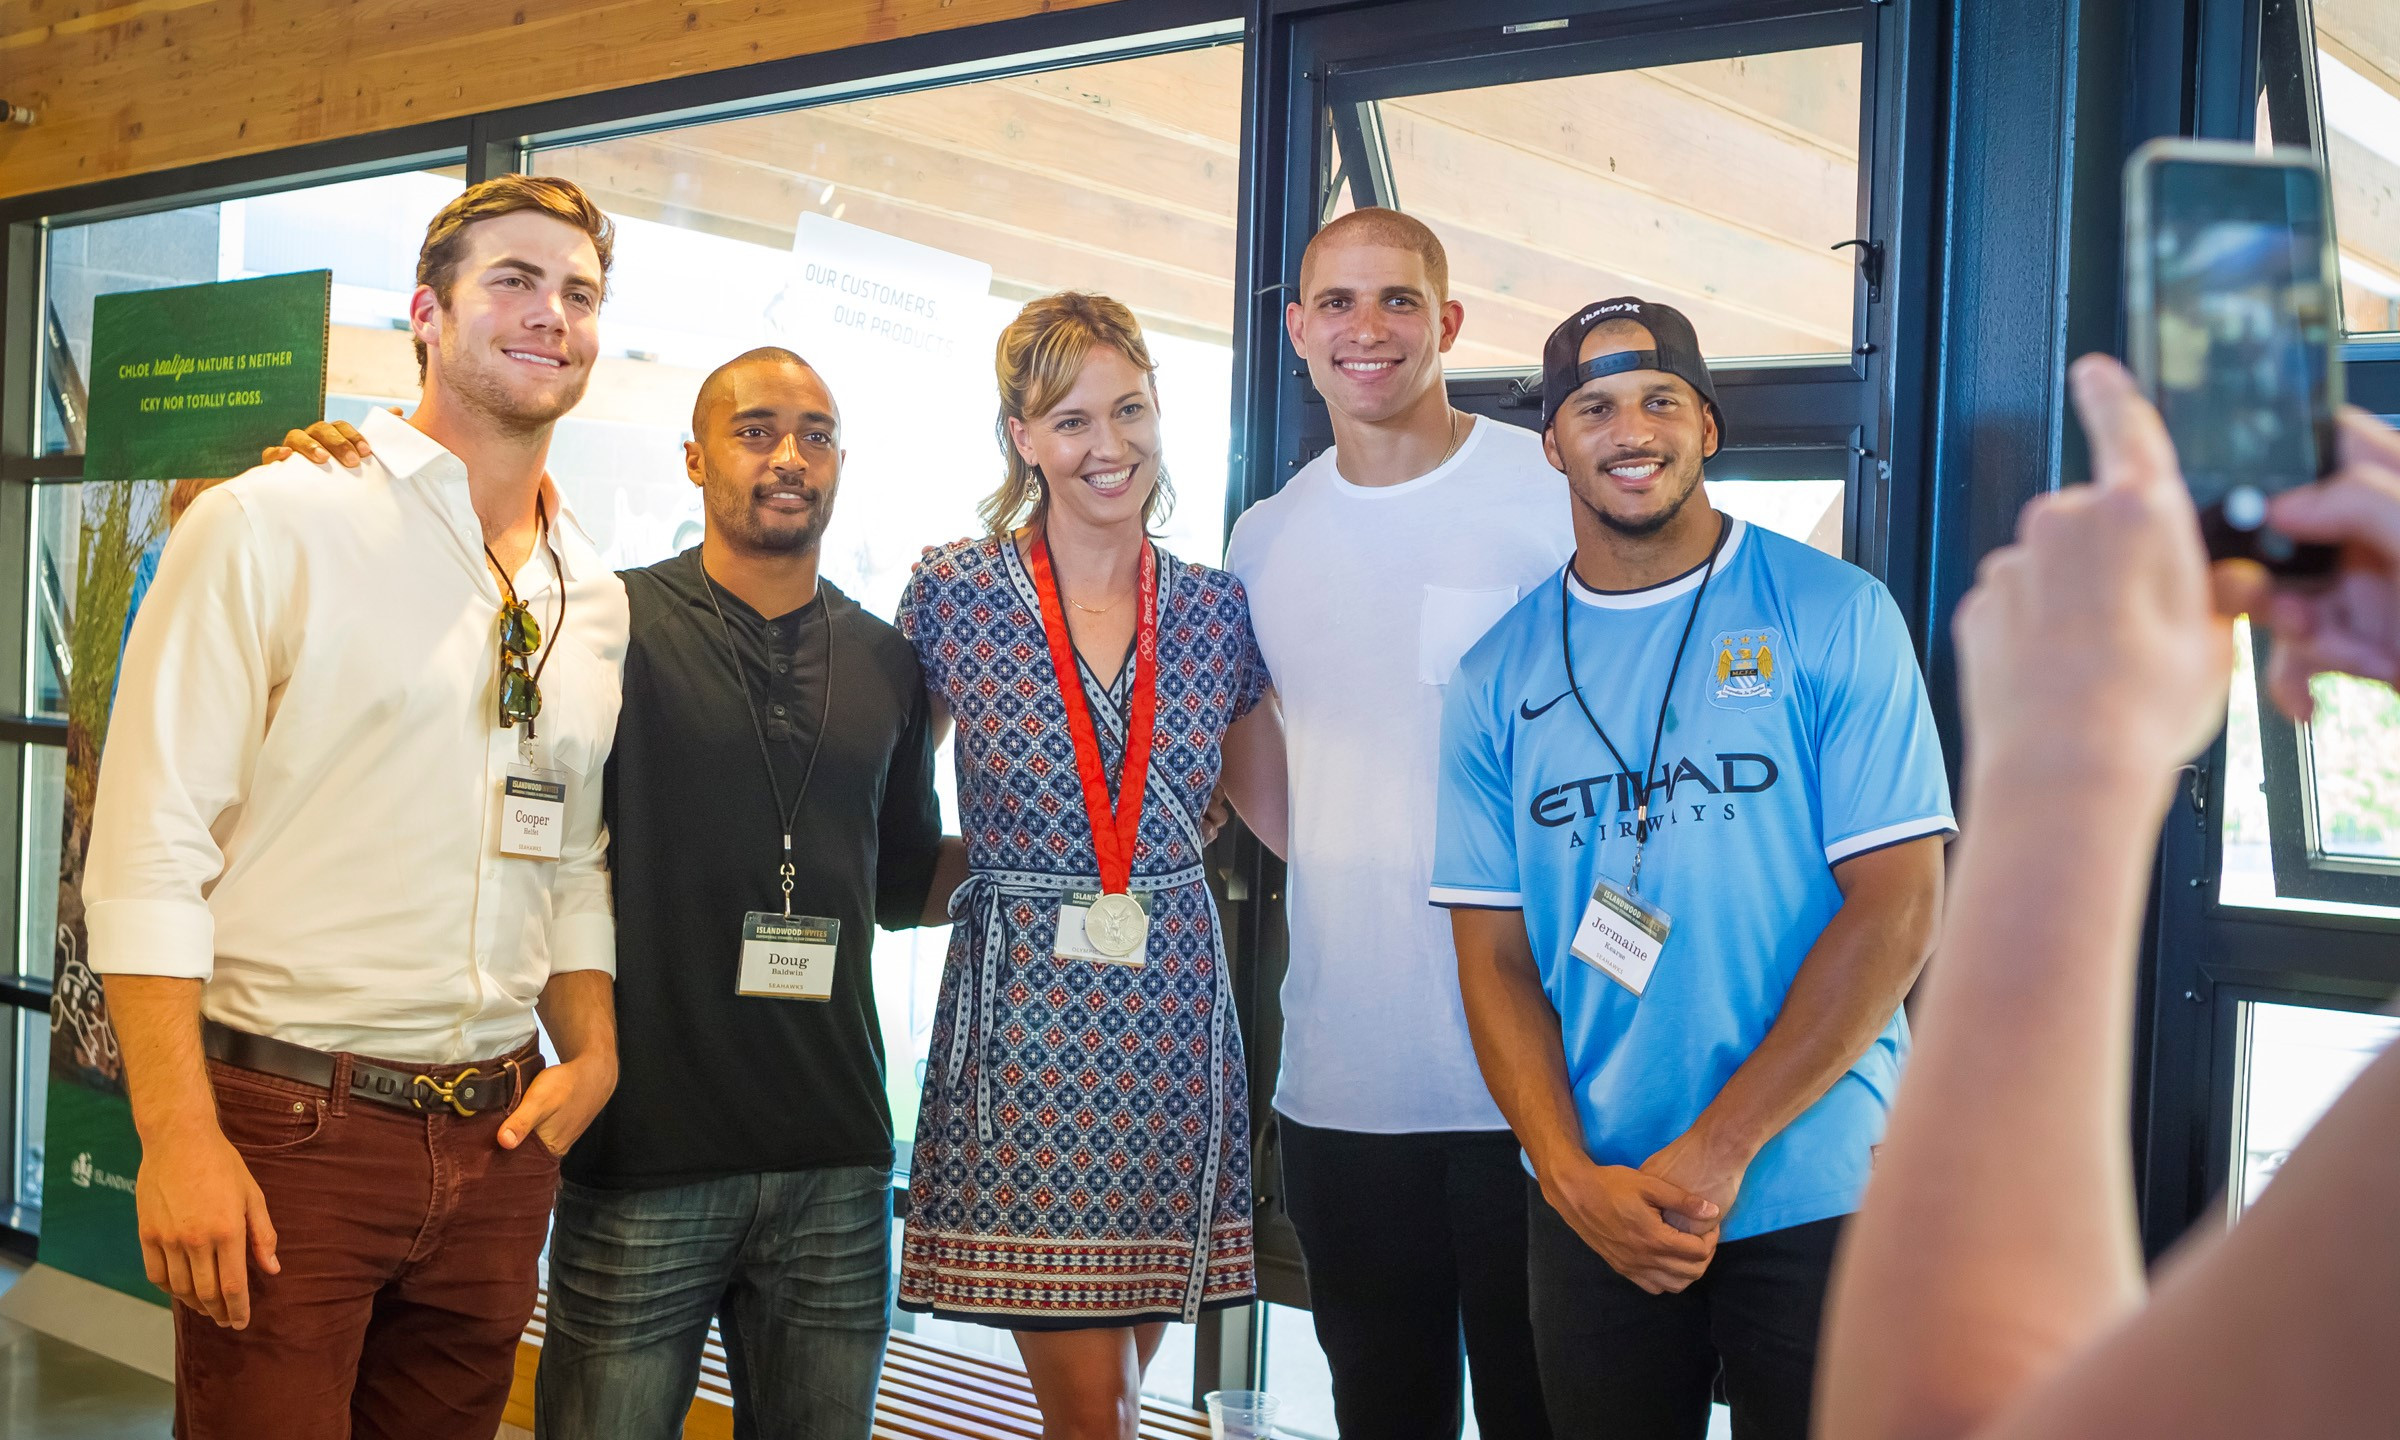 Some of Cooper's teammates came out to support The Nature Project, and as you'd expect, all camera's were pointed there direction. (Left To Right: Cooper Helfet, Doug Baldwin, Emily Silver (2008 U.S. Olympic Silver Medalist), Jimmy Graham, Jermaine Kearse)